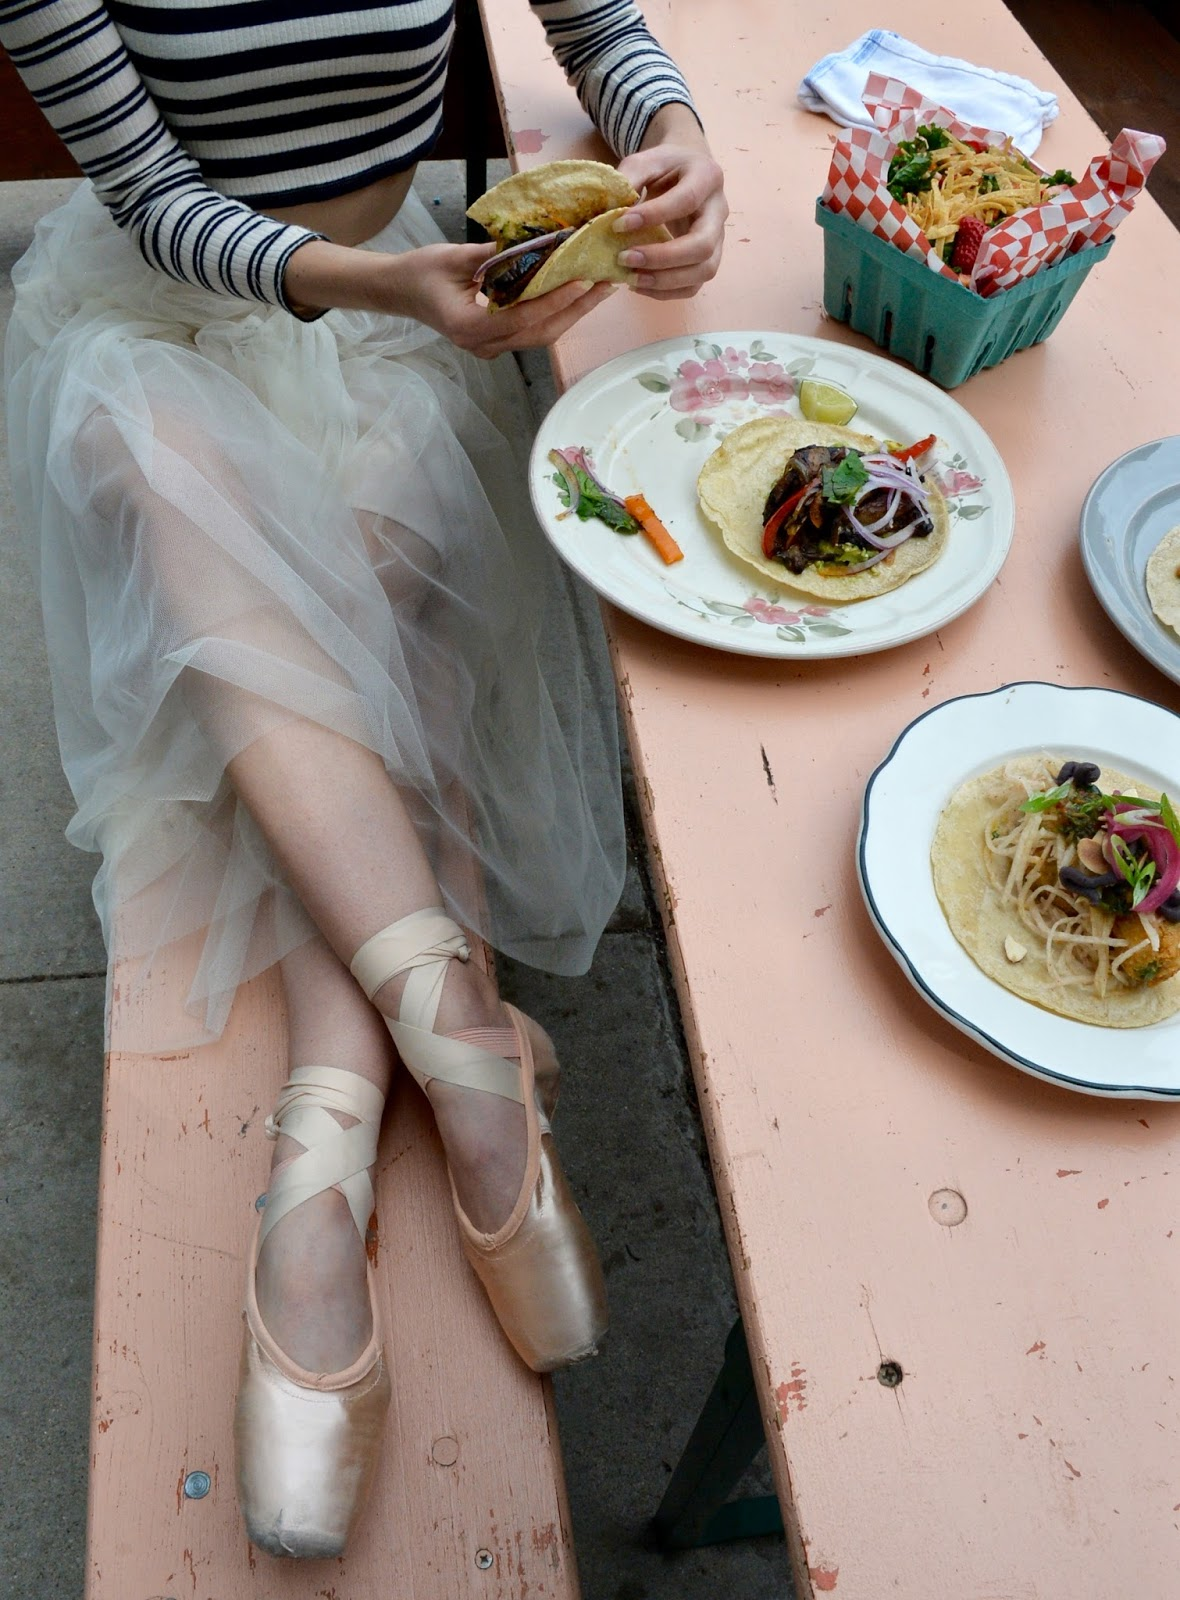 Eating tacos while wearing a tutu and pointe shoes.